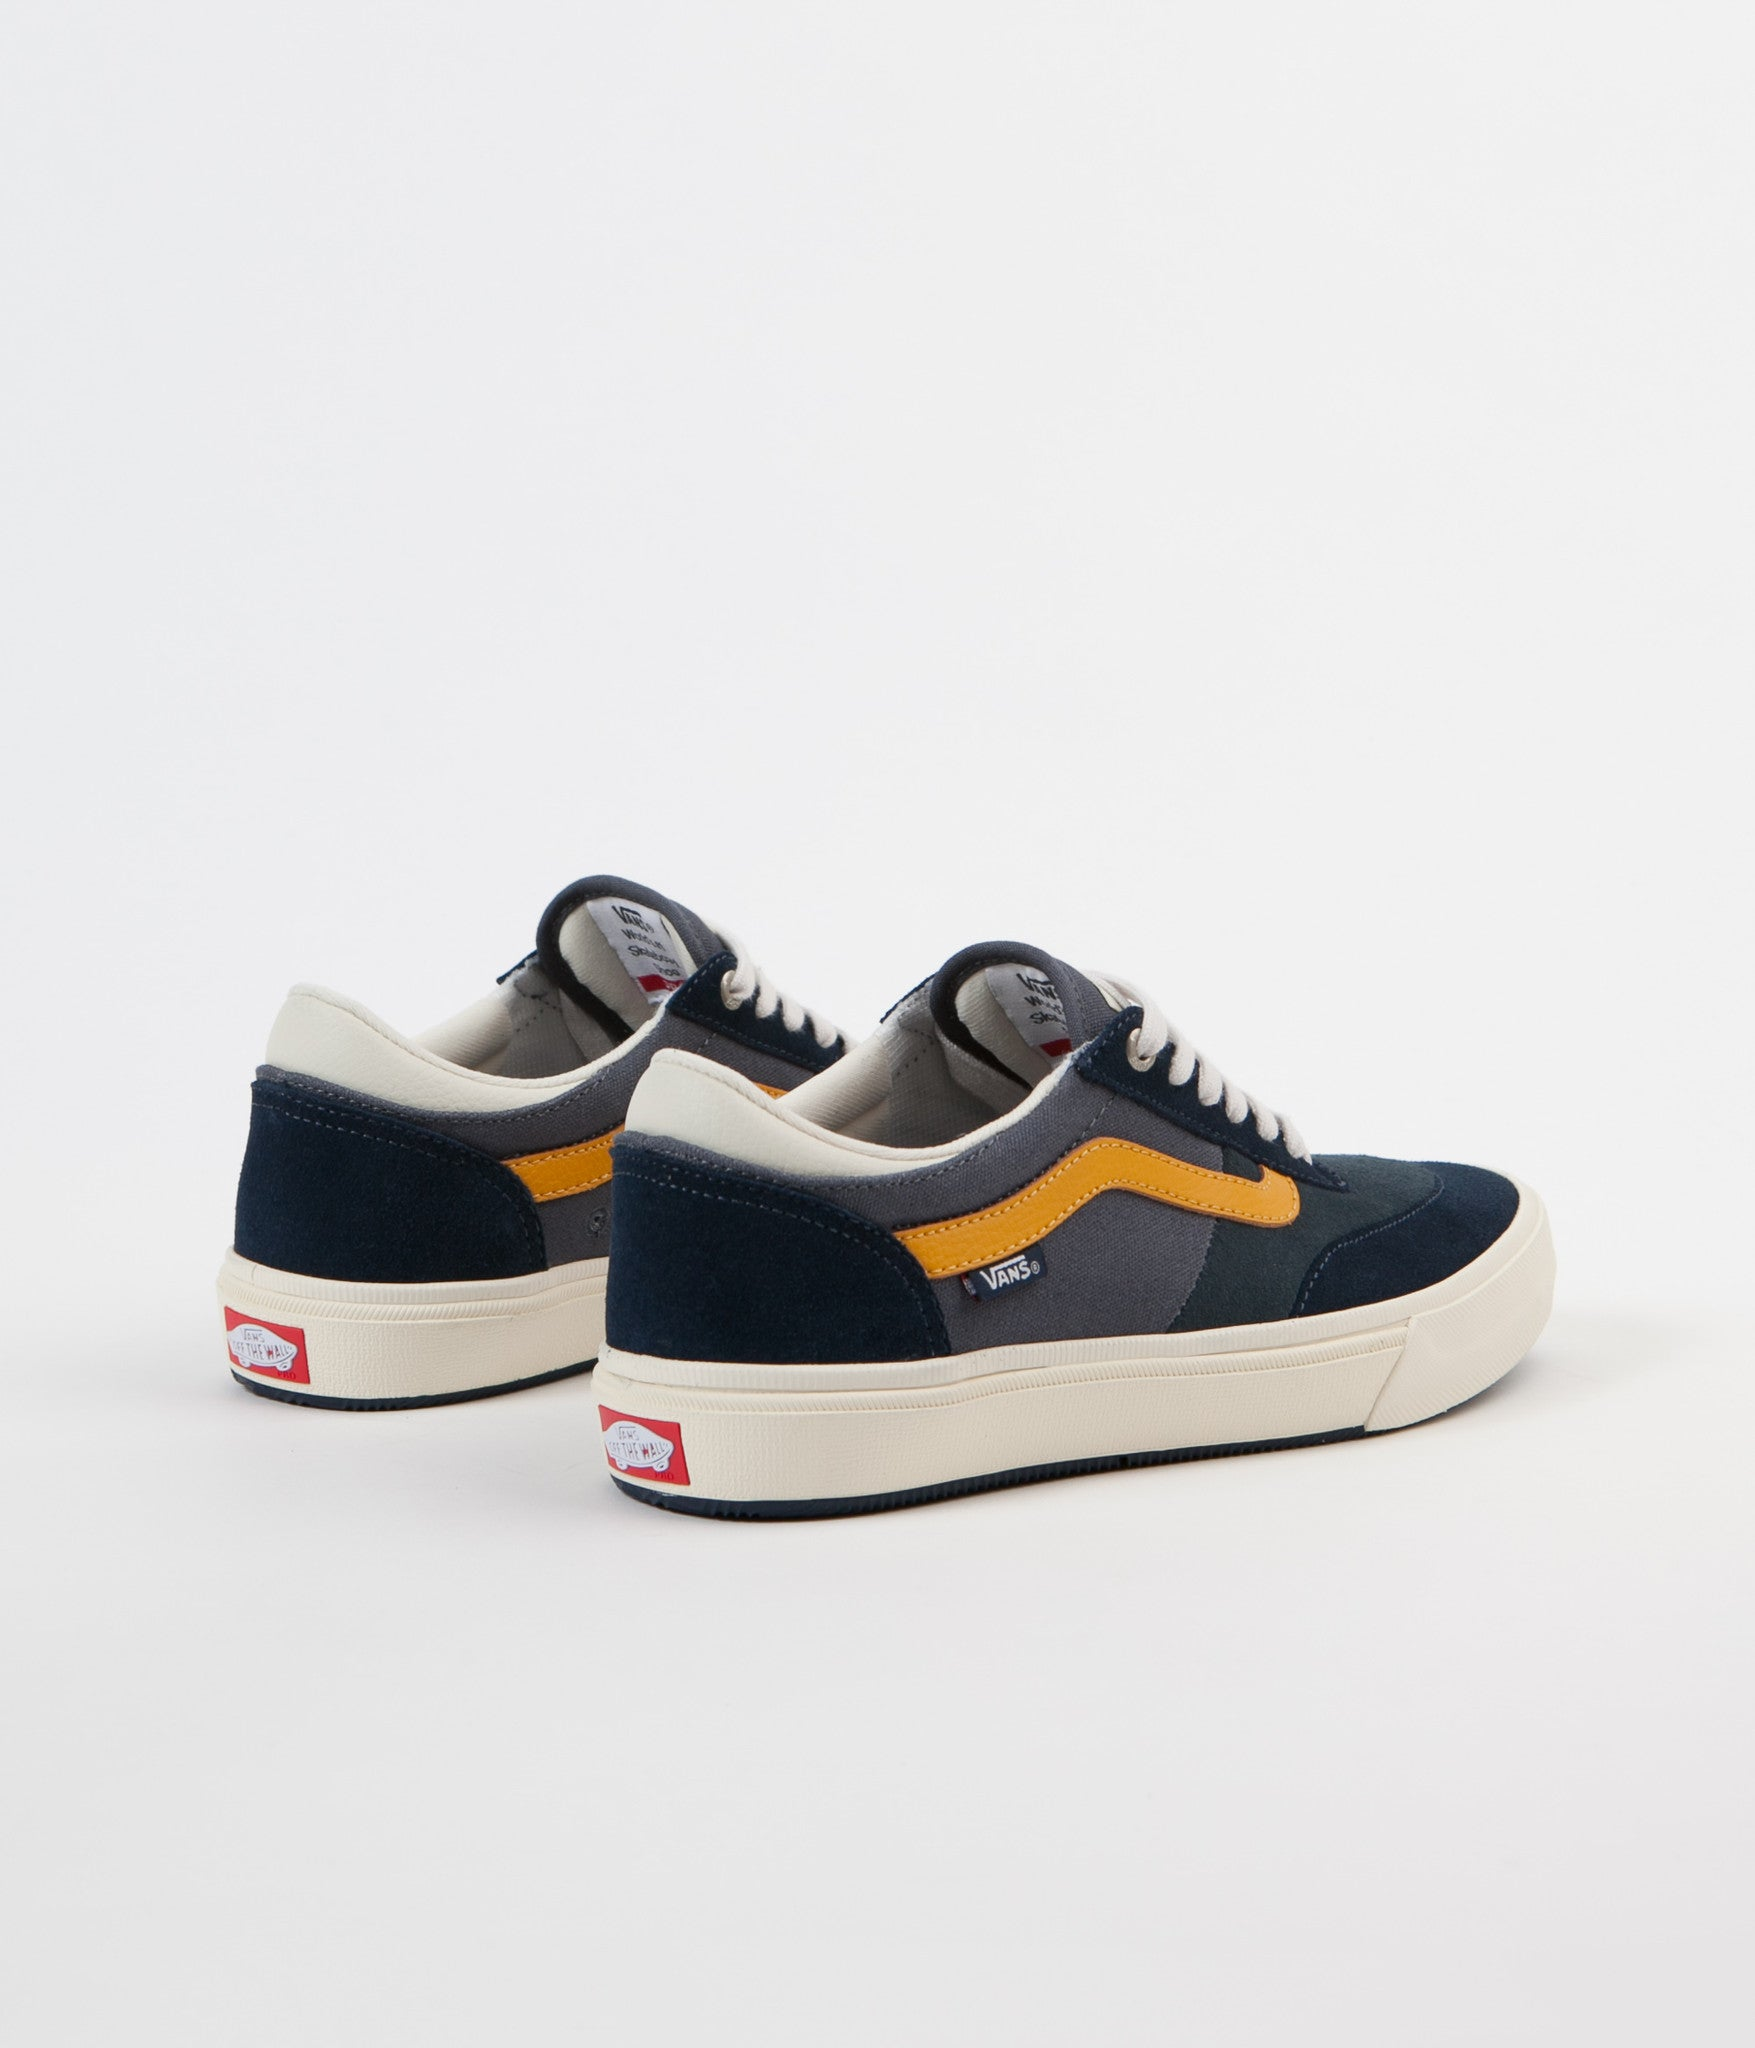 Vans Gilbert Crockett 2 Pro Shoes - Antique / Navy